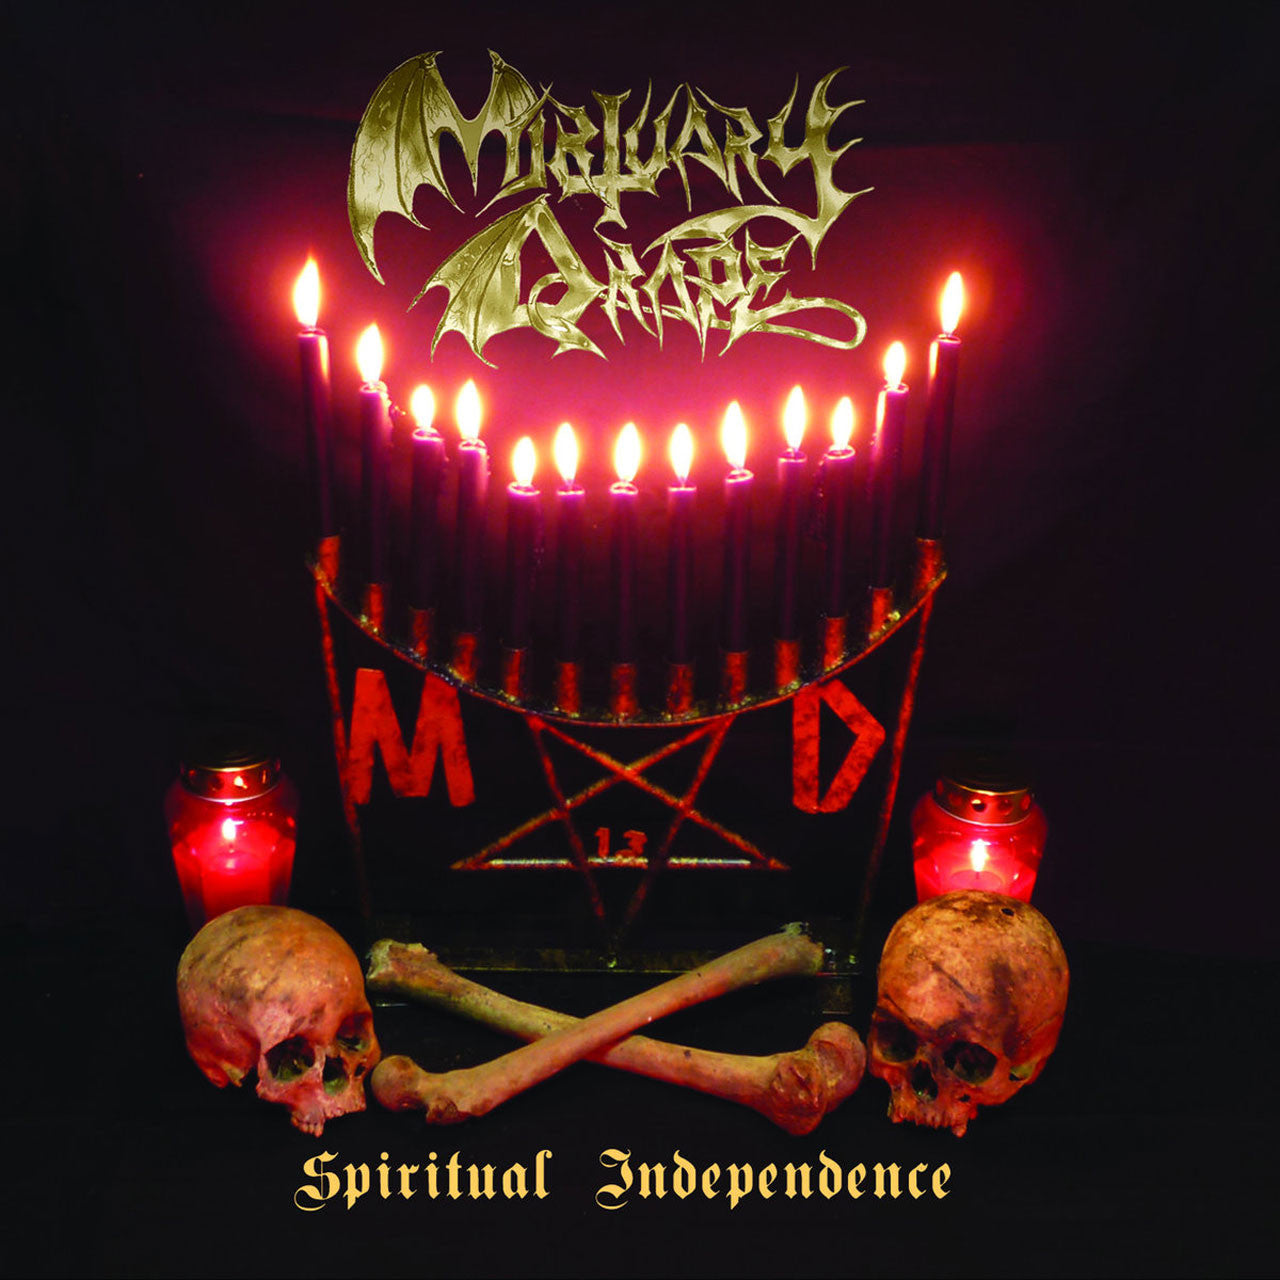 Mortuary Drape - Spiritual Independence (Digipak CD)